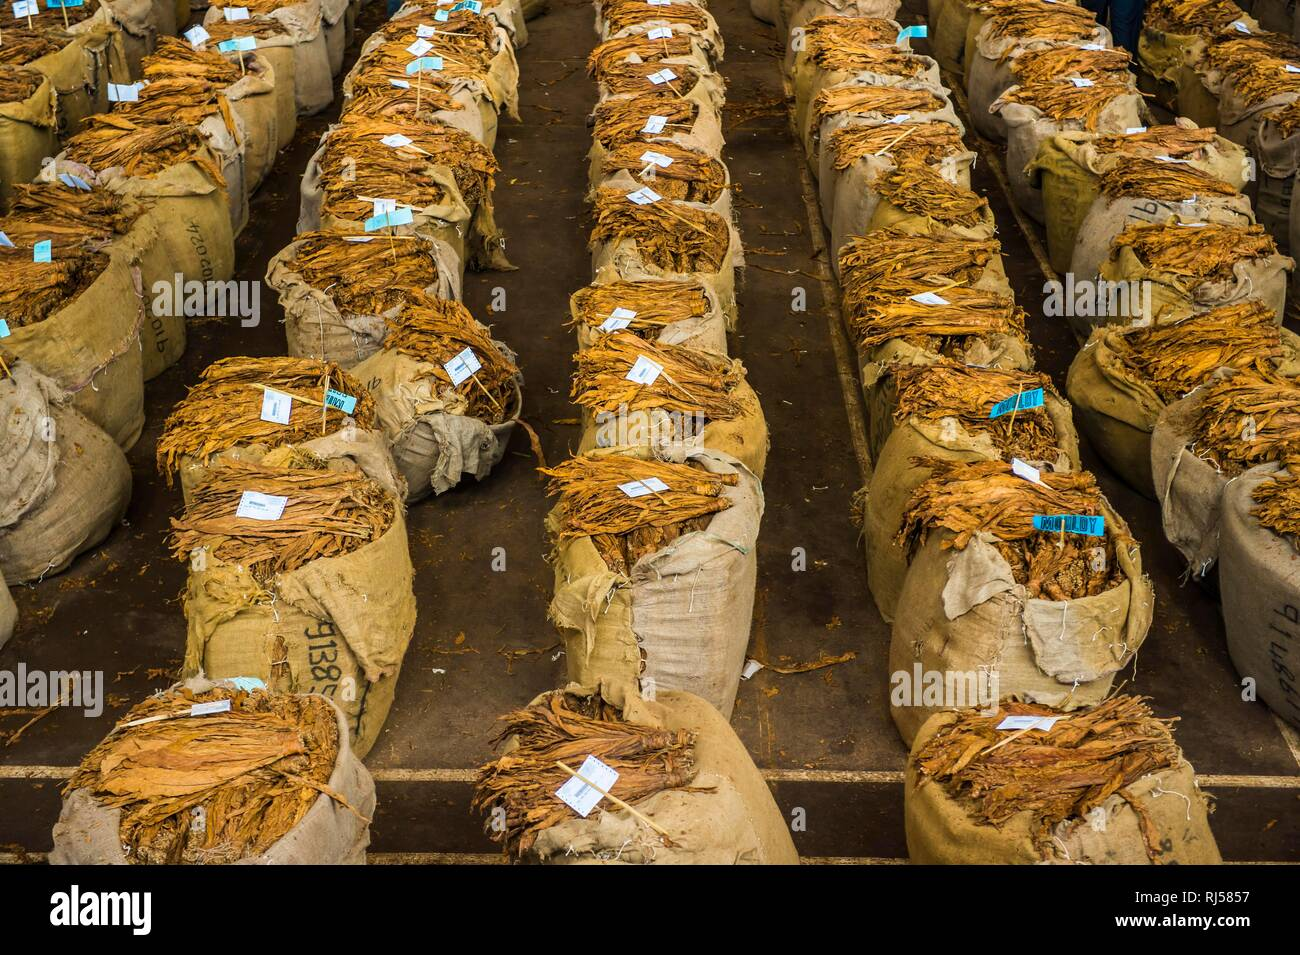 Huge bags of dried tobacco, Tobacco auction, Lilongwe, Malawi - Stock Image